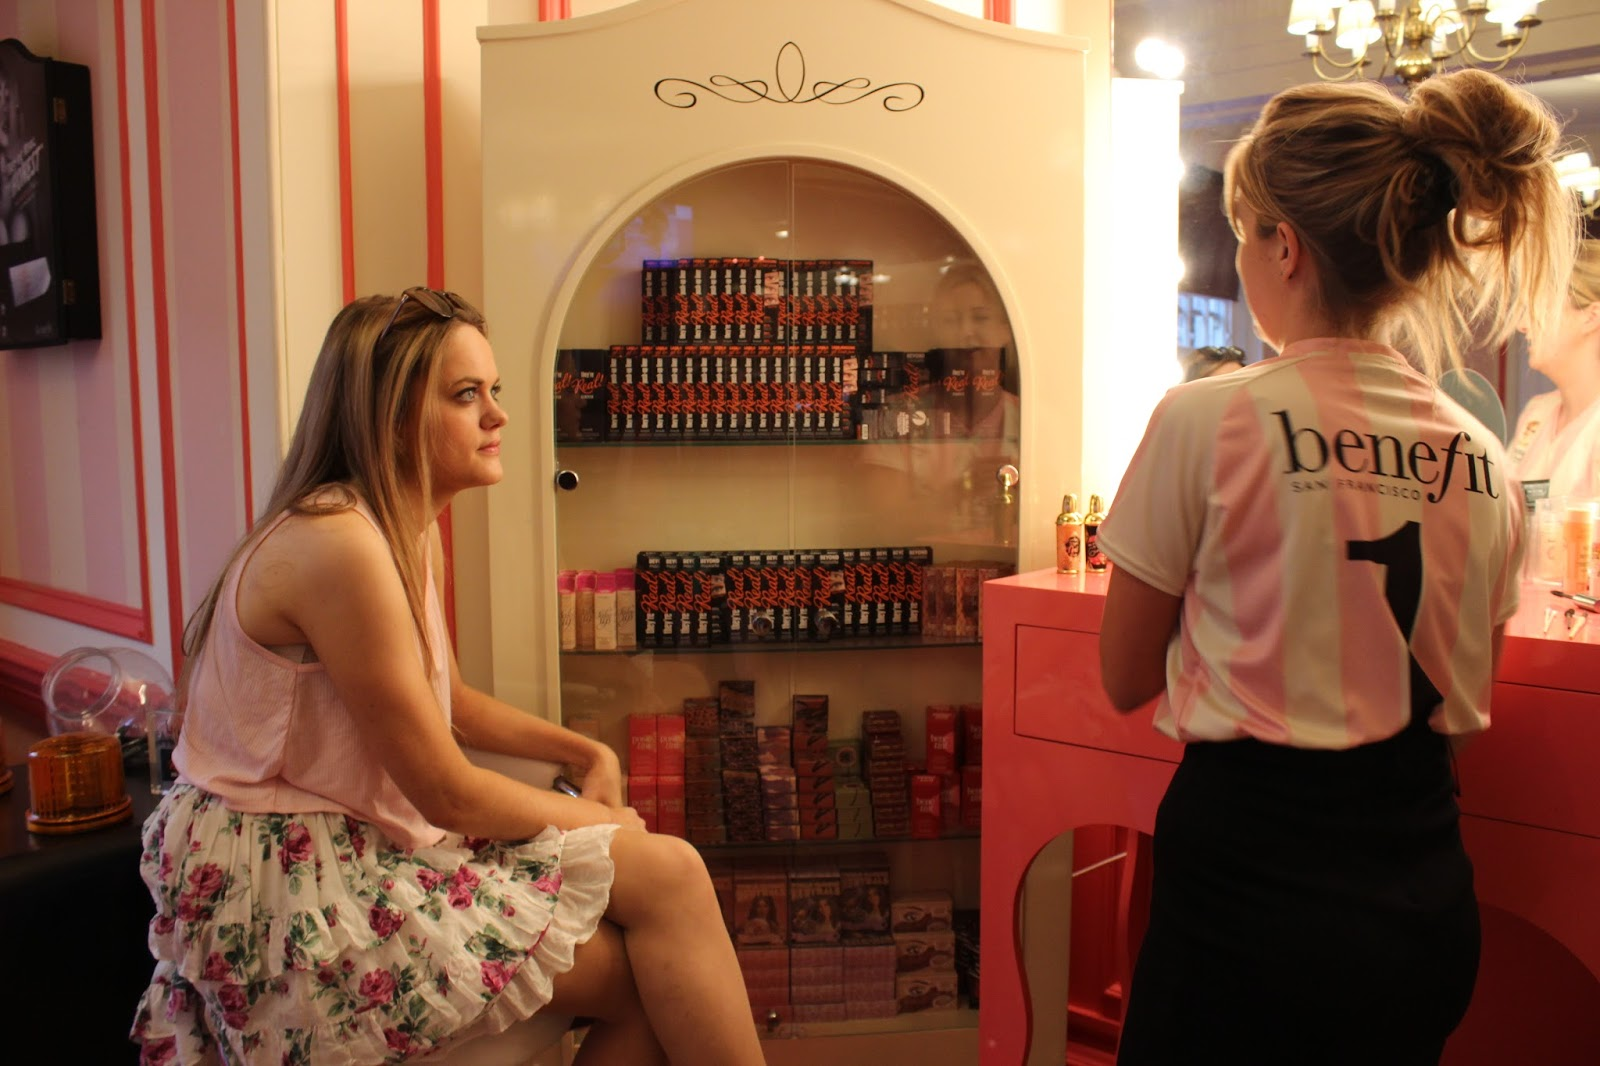 Girl being given a benefit makeover